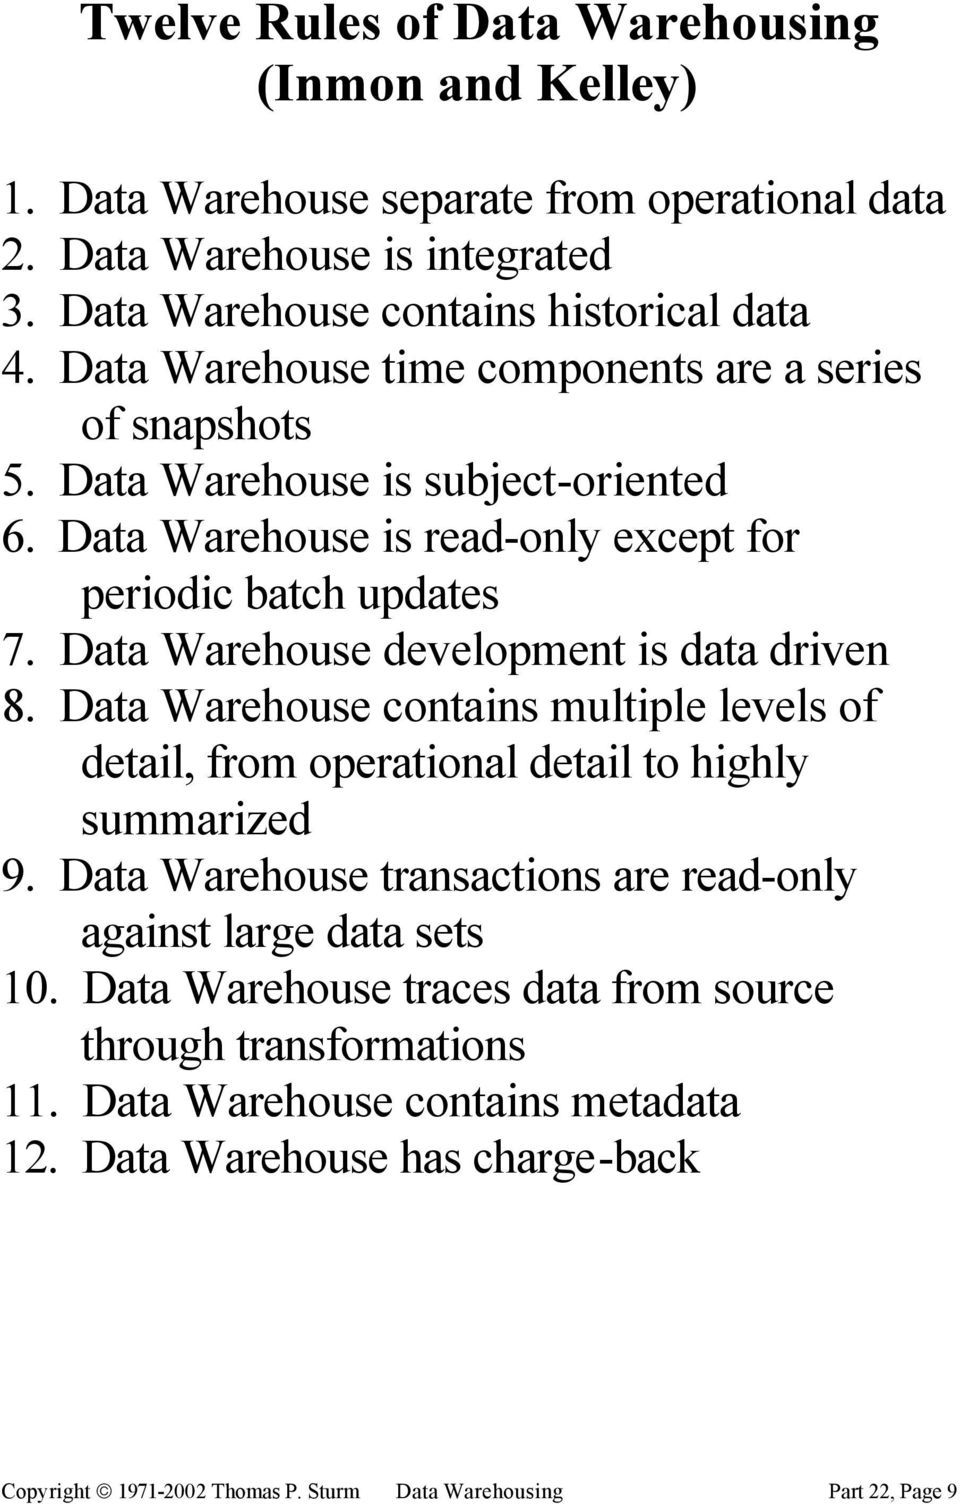 Data Warehouse development is data driven 8. Data Warehouse contains multiple levels of detail, from operational detail to highly summarized 9.